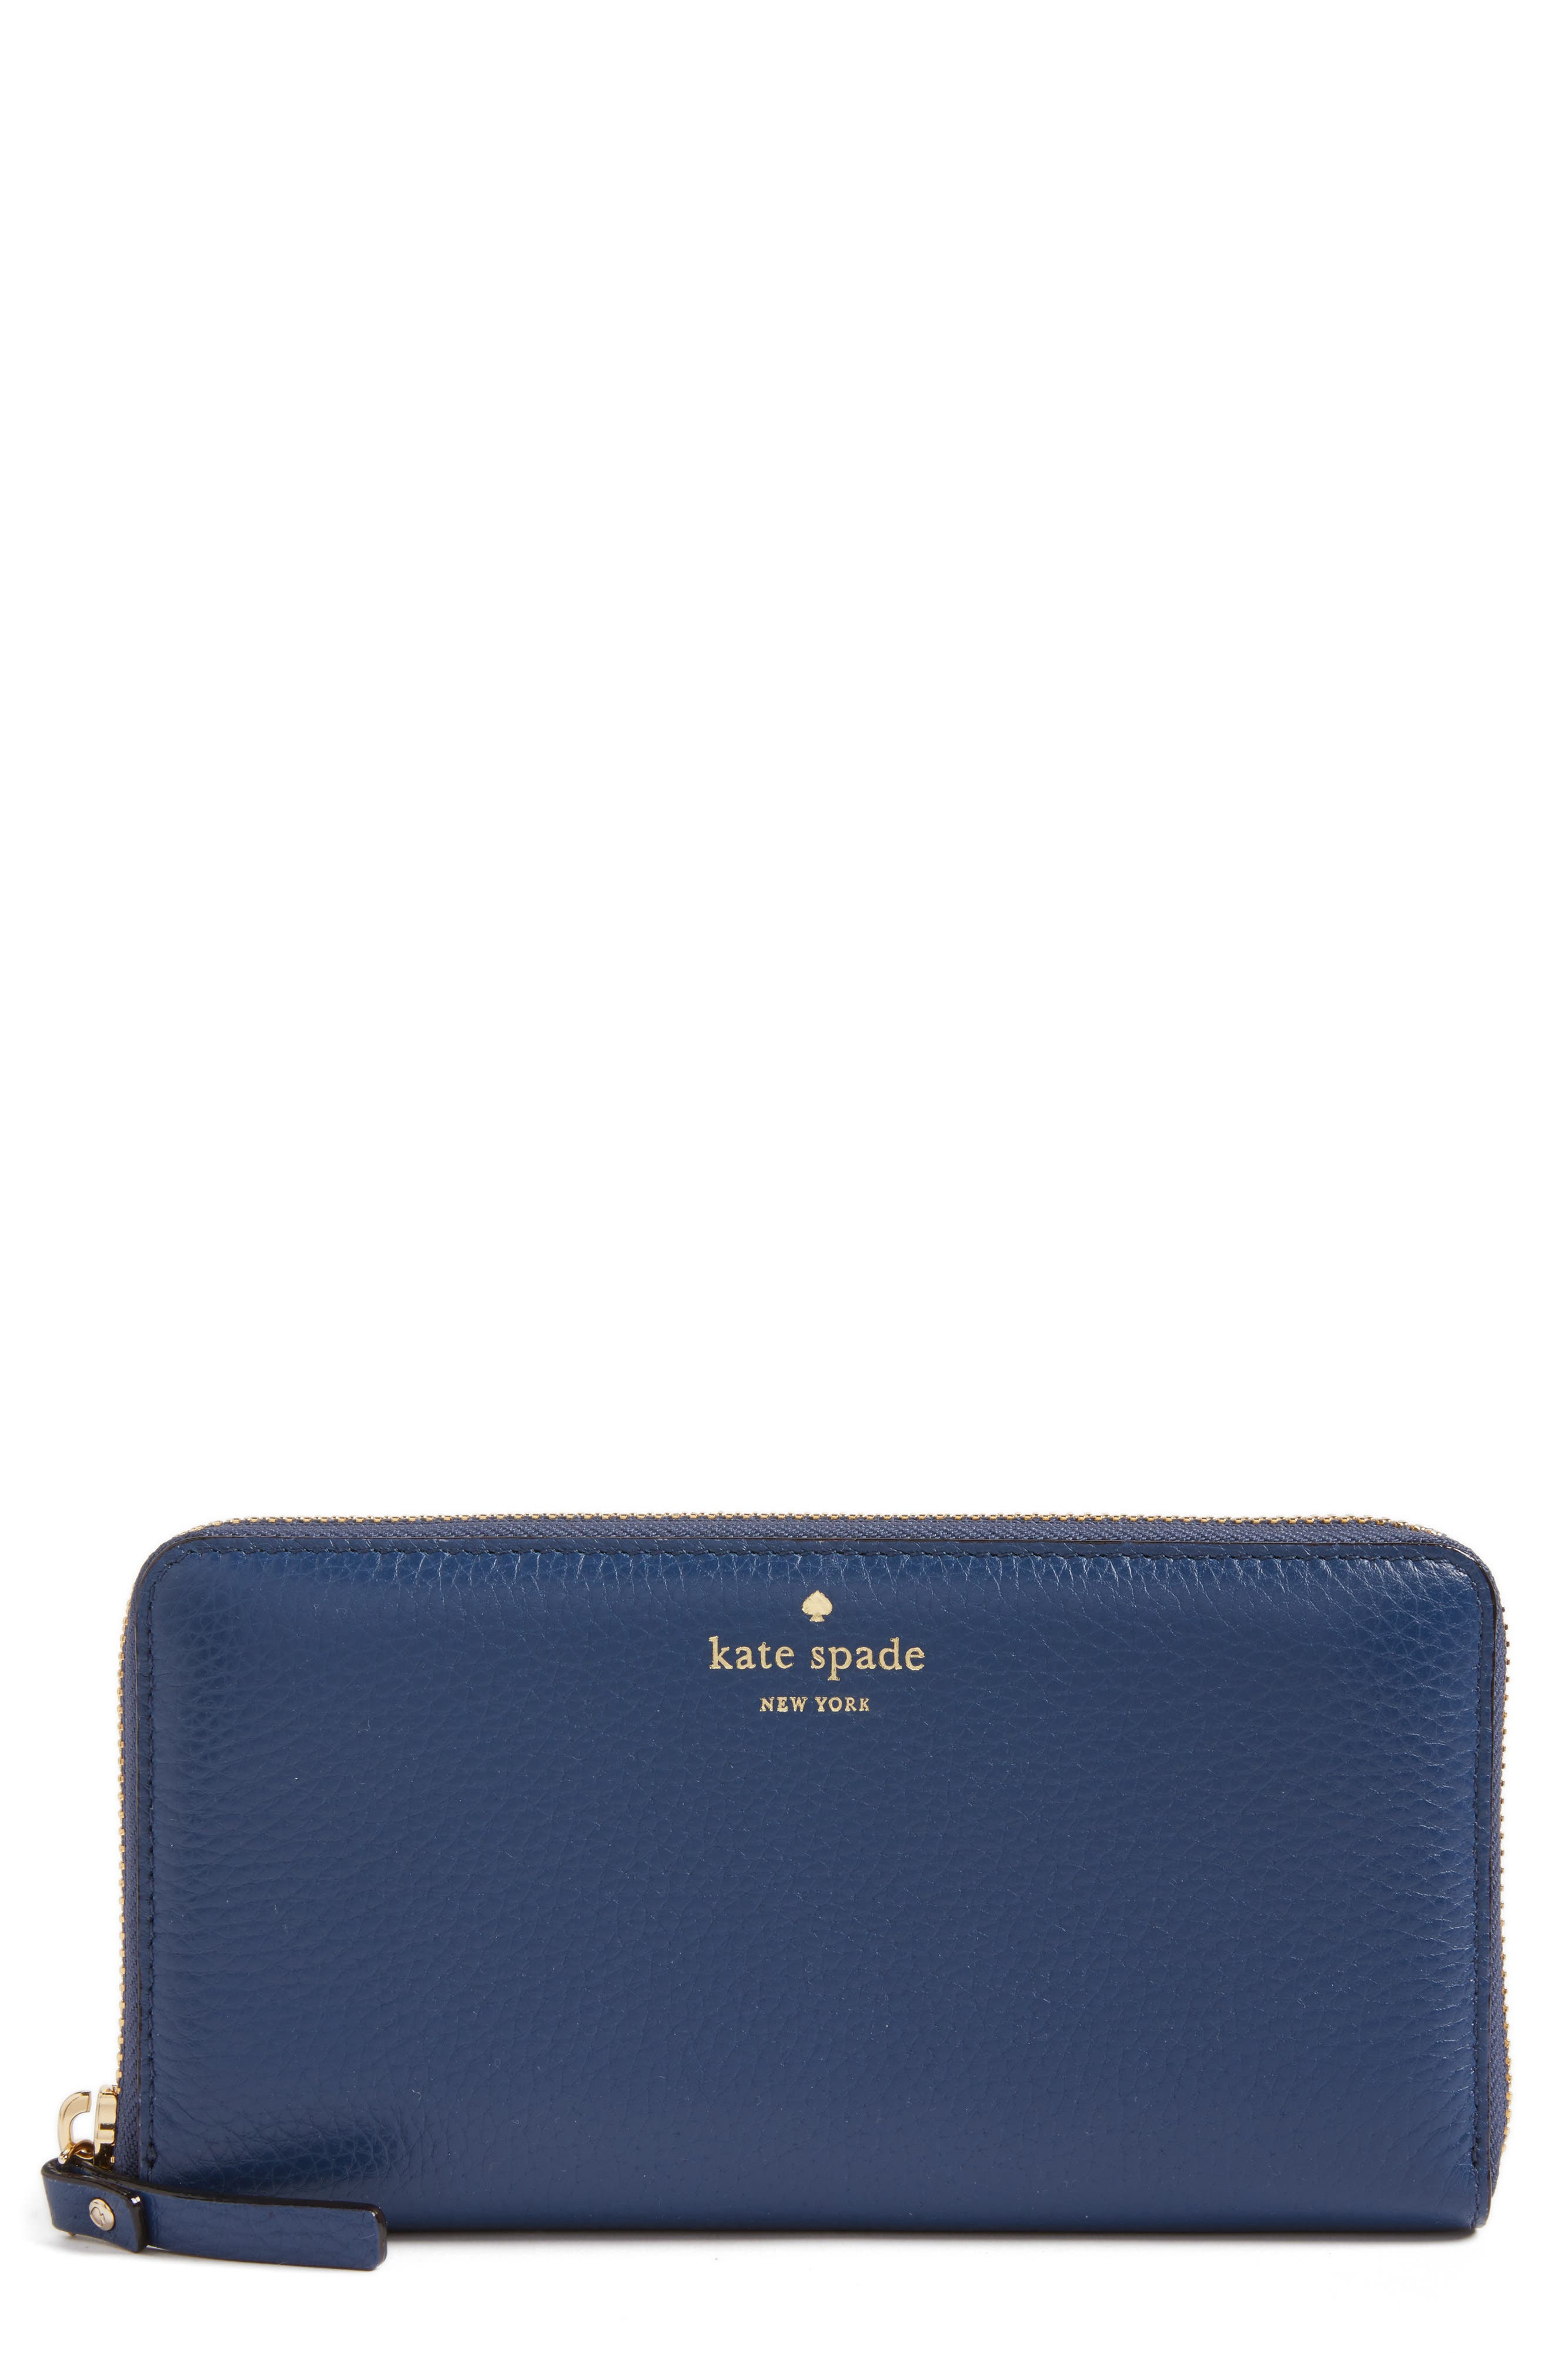 KATE SPADE NEW YORK young lane - lacey leather wallet